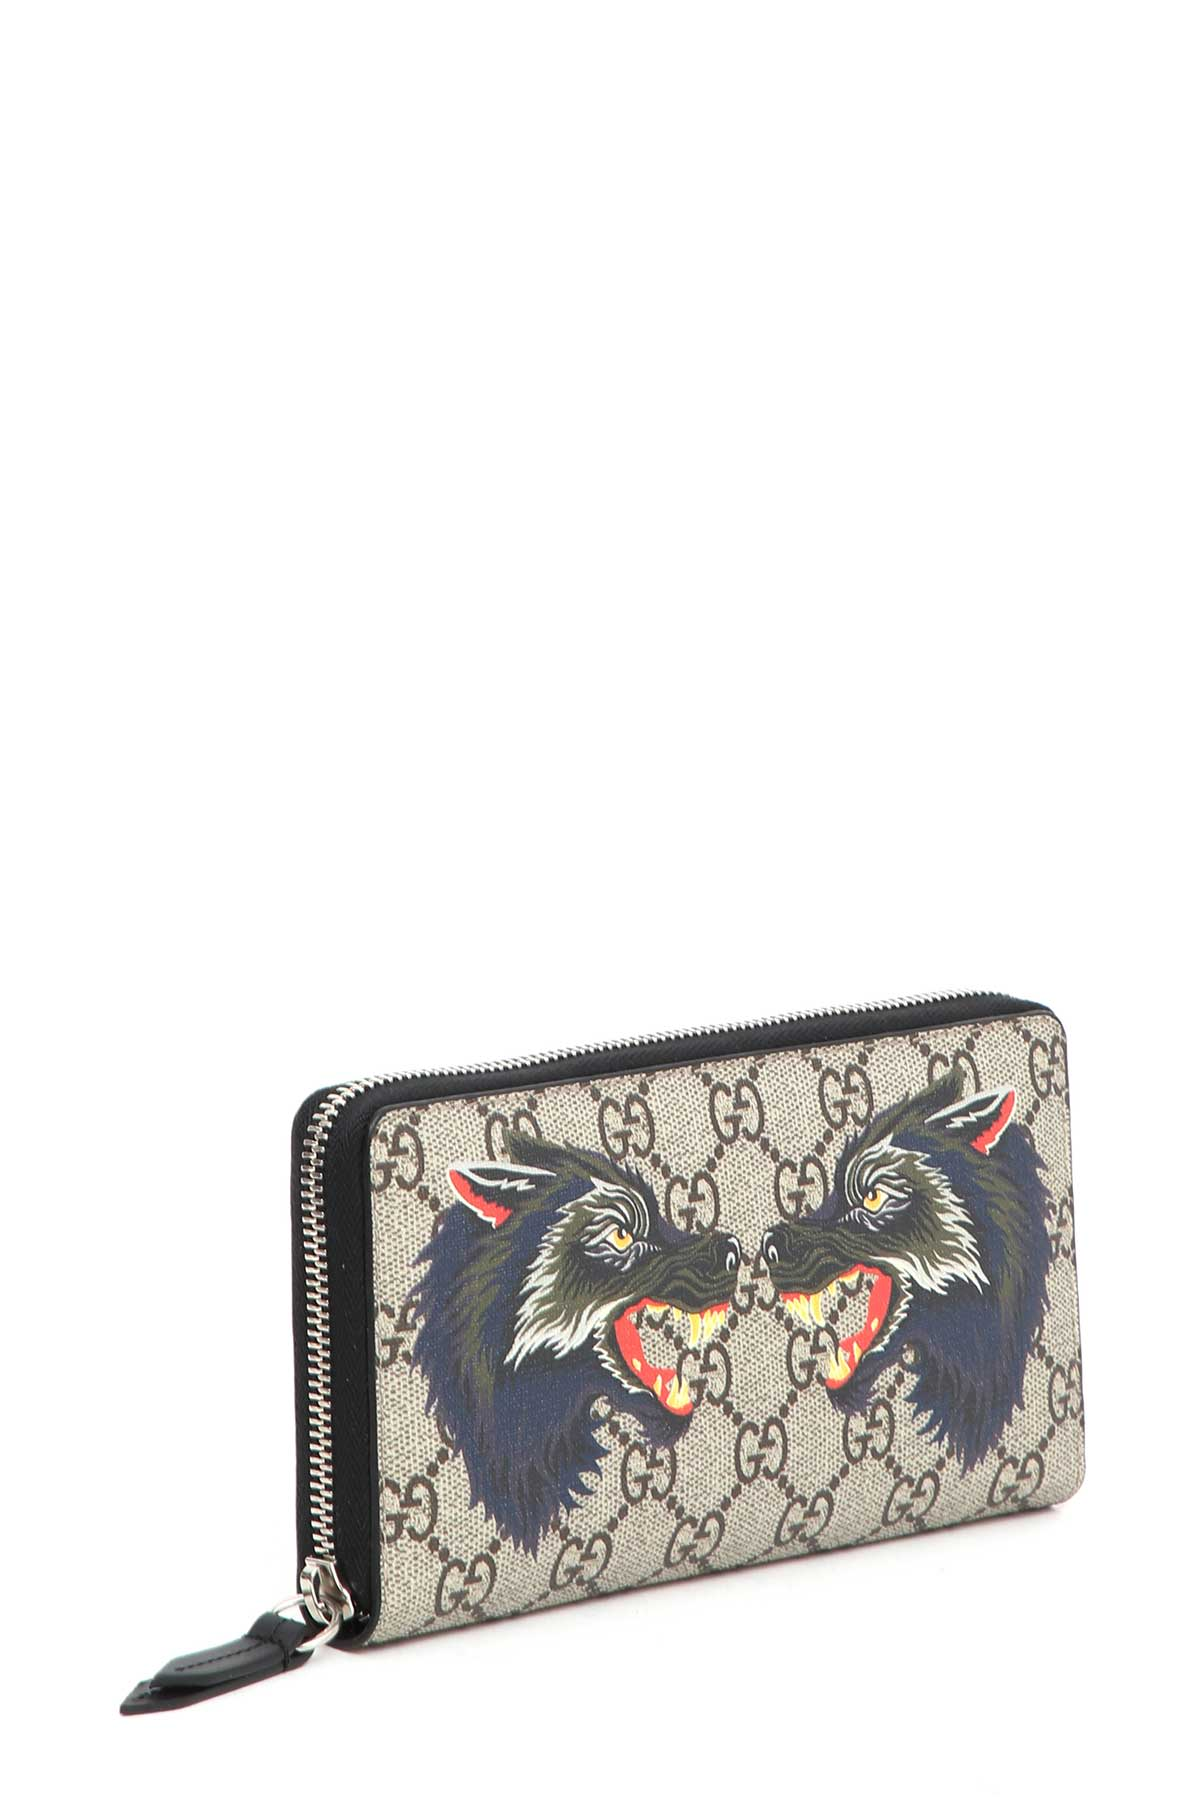 adf9240f1ba GUCCI Wallet With Wolf Print